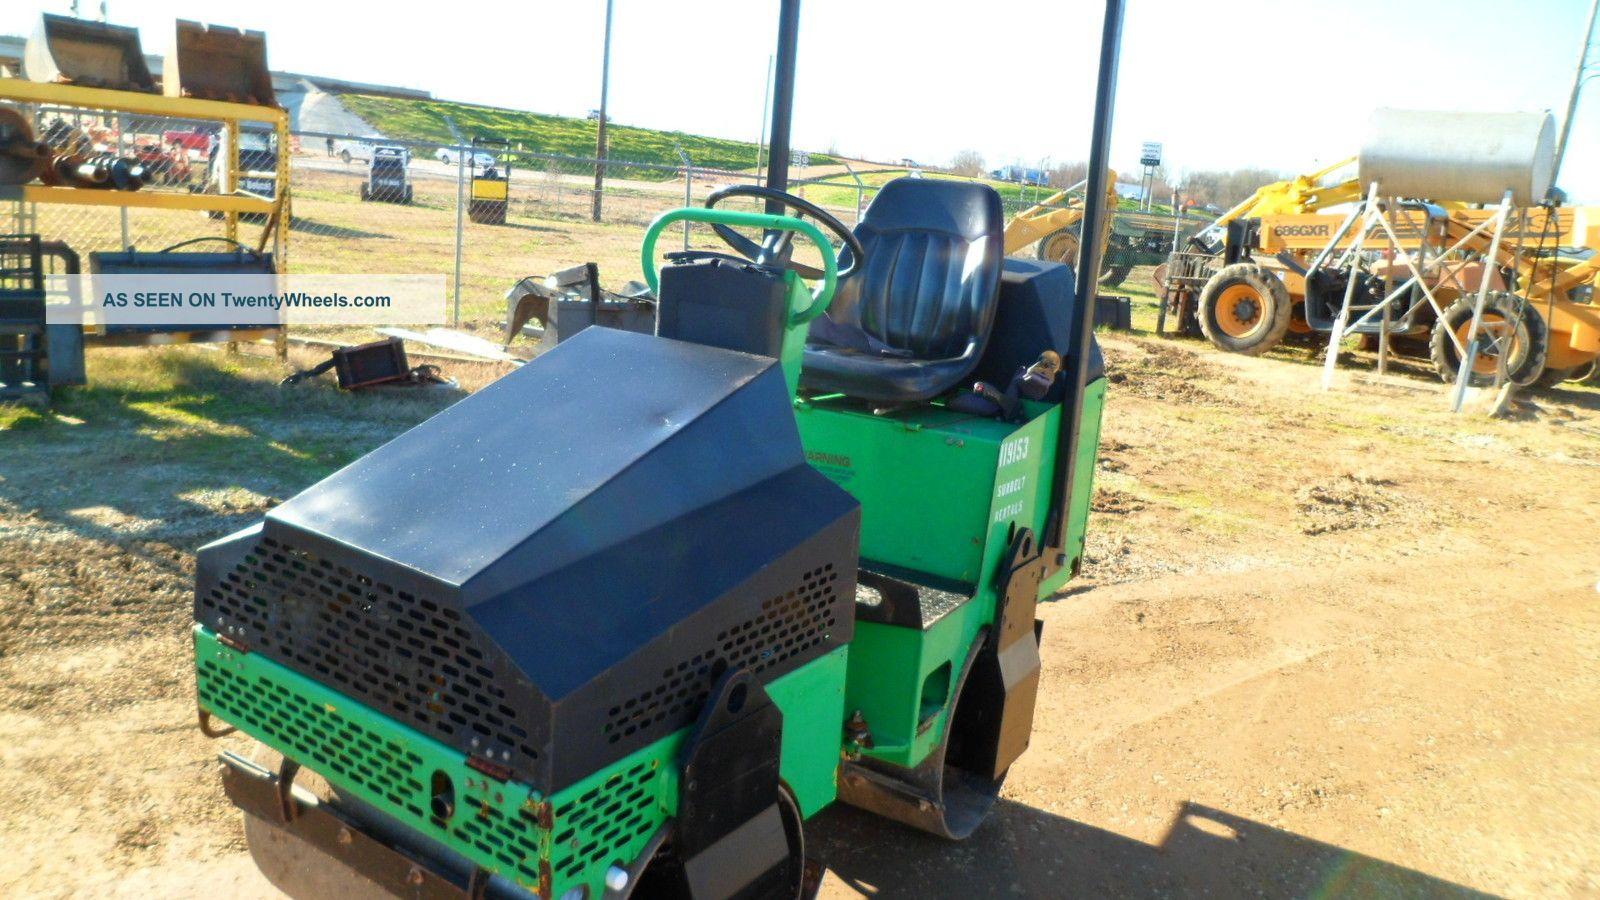 2005 Multiquip Ar - 13ha Vibratory Compactor - - Only 426 Hours - - Compactors & Rollers - Riding photo